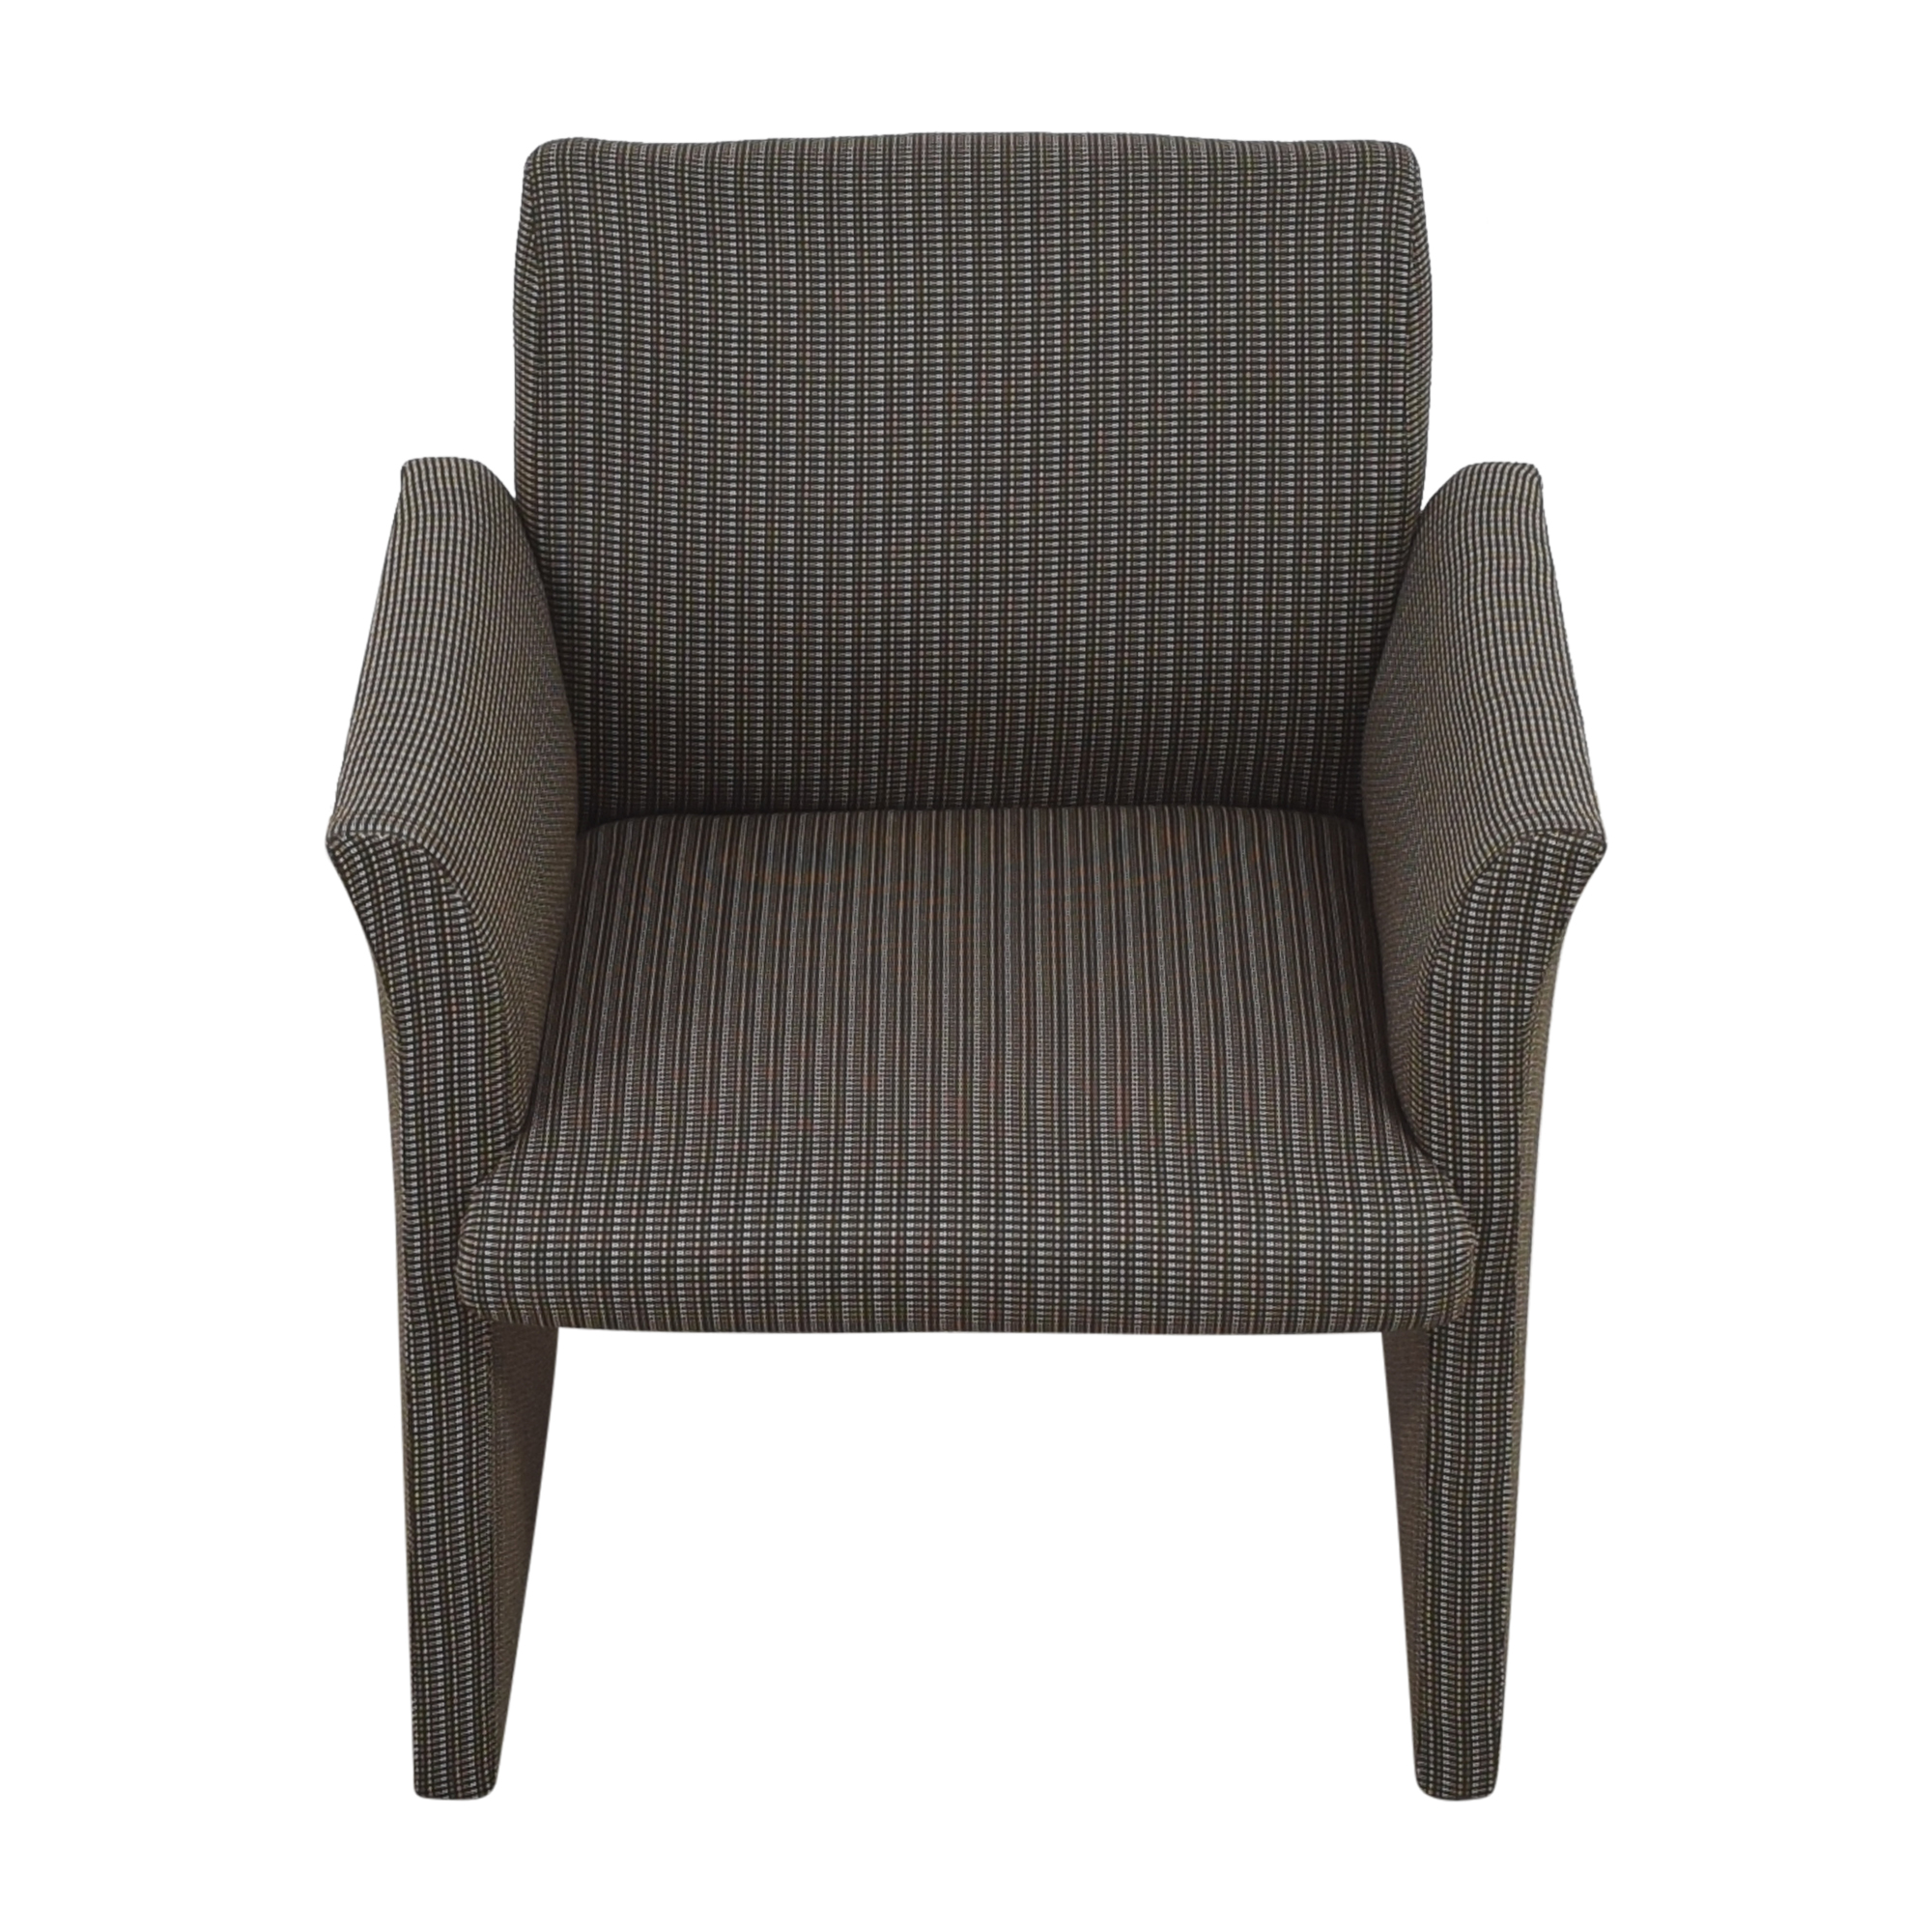 Contemporary Upholstered Club Chair on sale